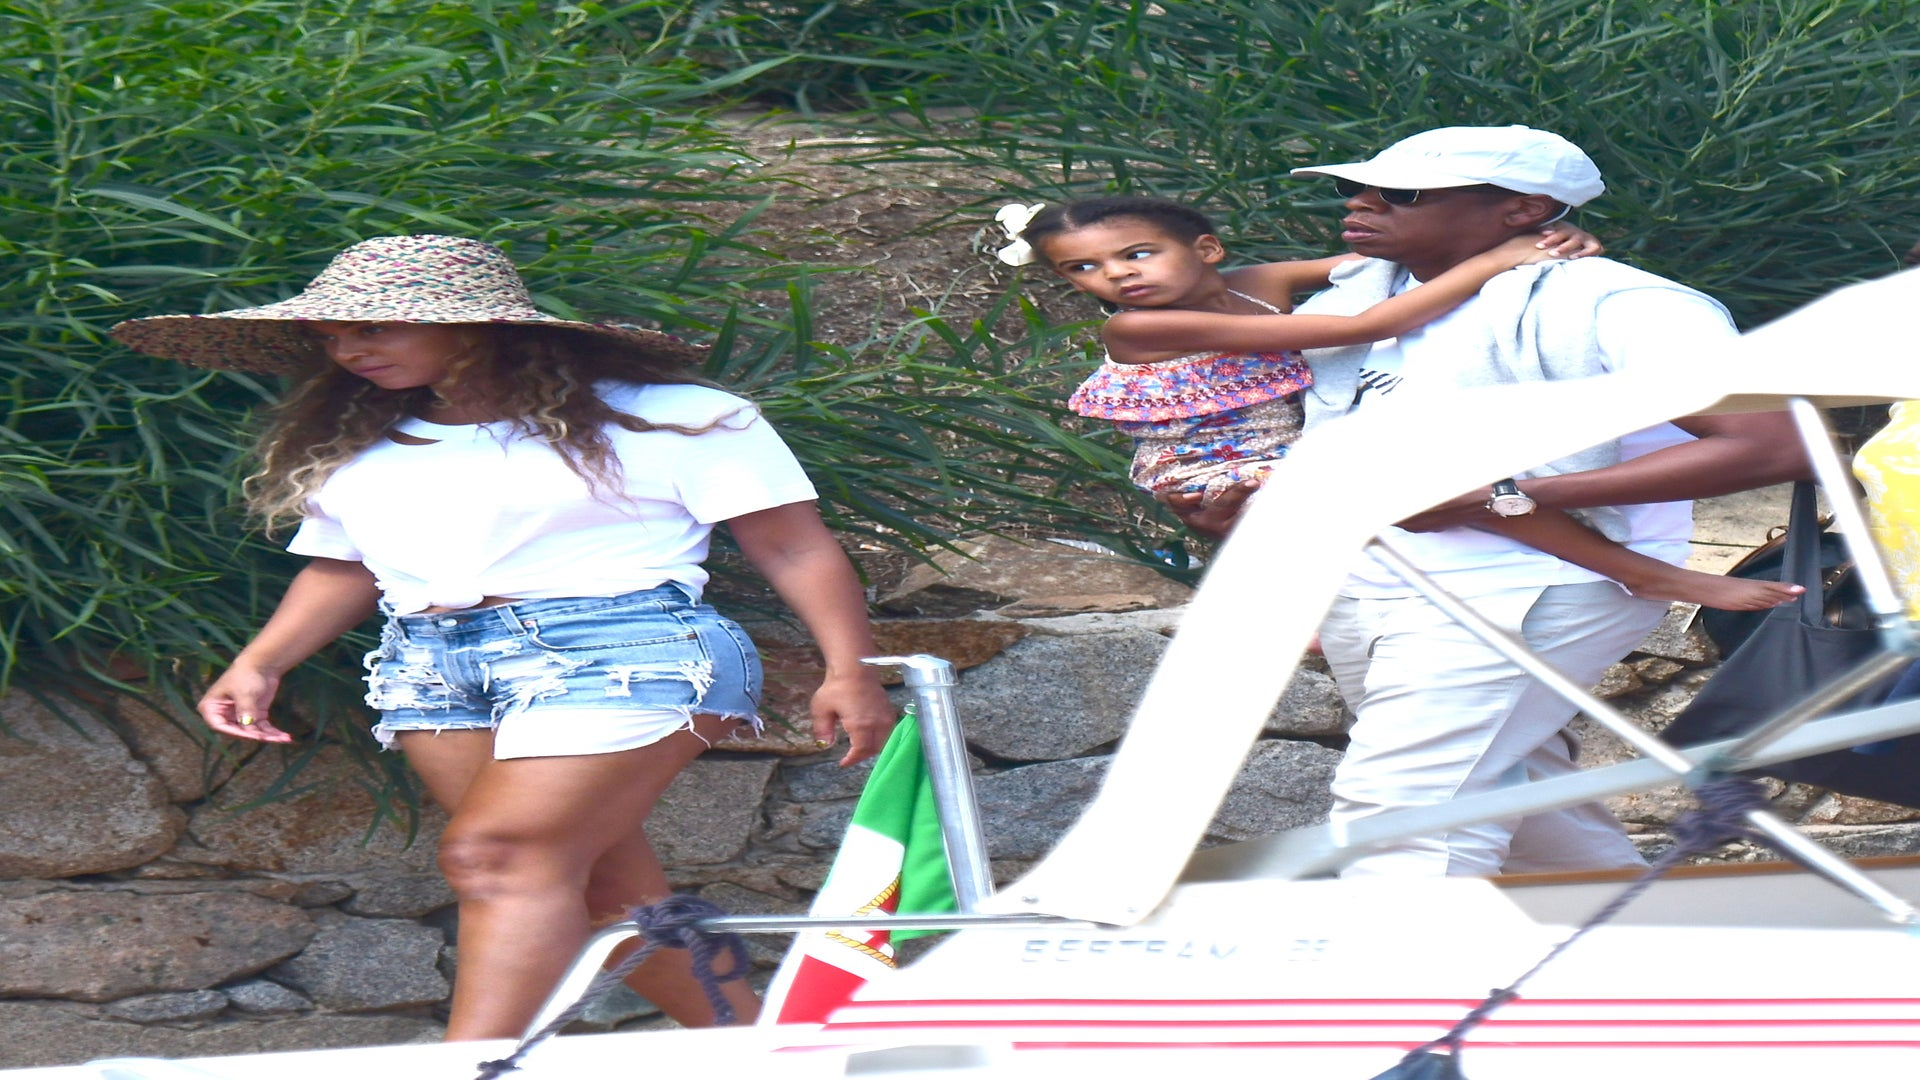 Beyoncé Shows Off Her Super Toned Legs in Short Shorts While Out in Italy